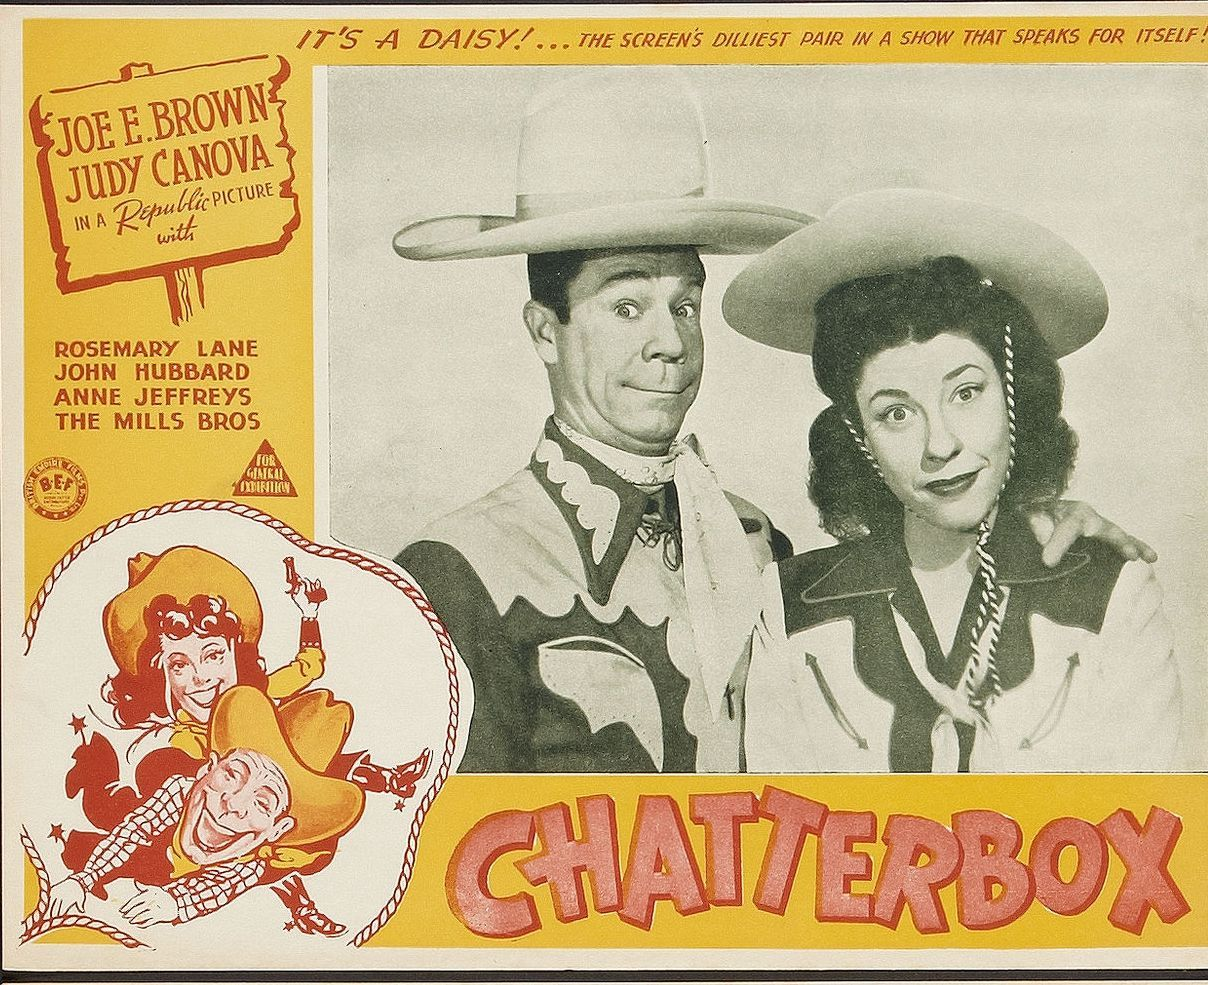 Joe E. Brown and Judy Canova in Chatterbox (1943)